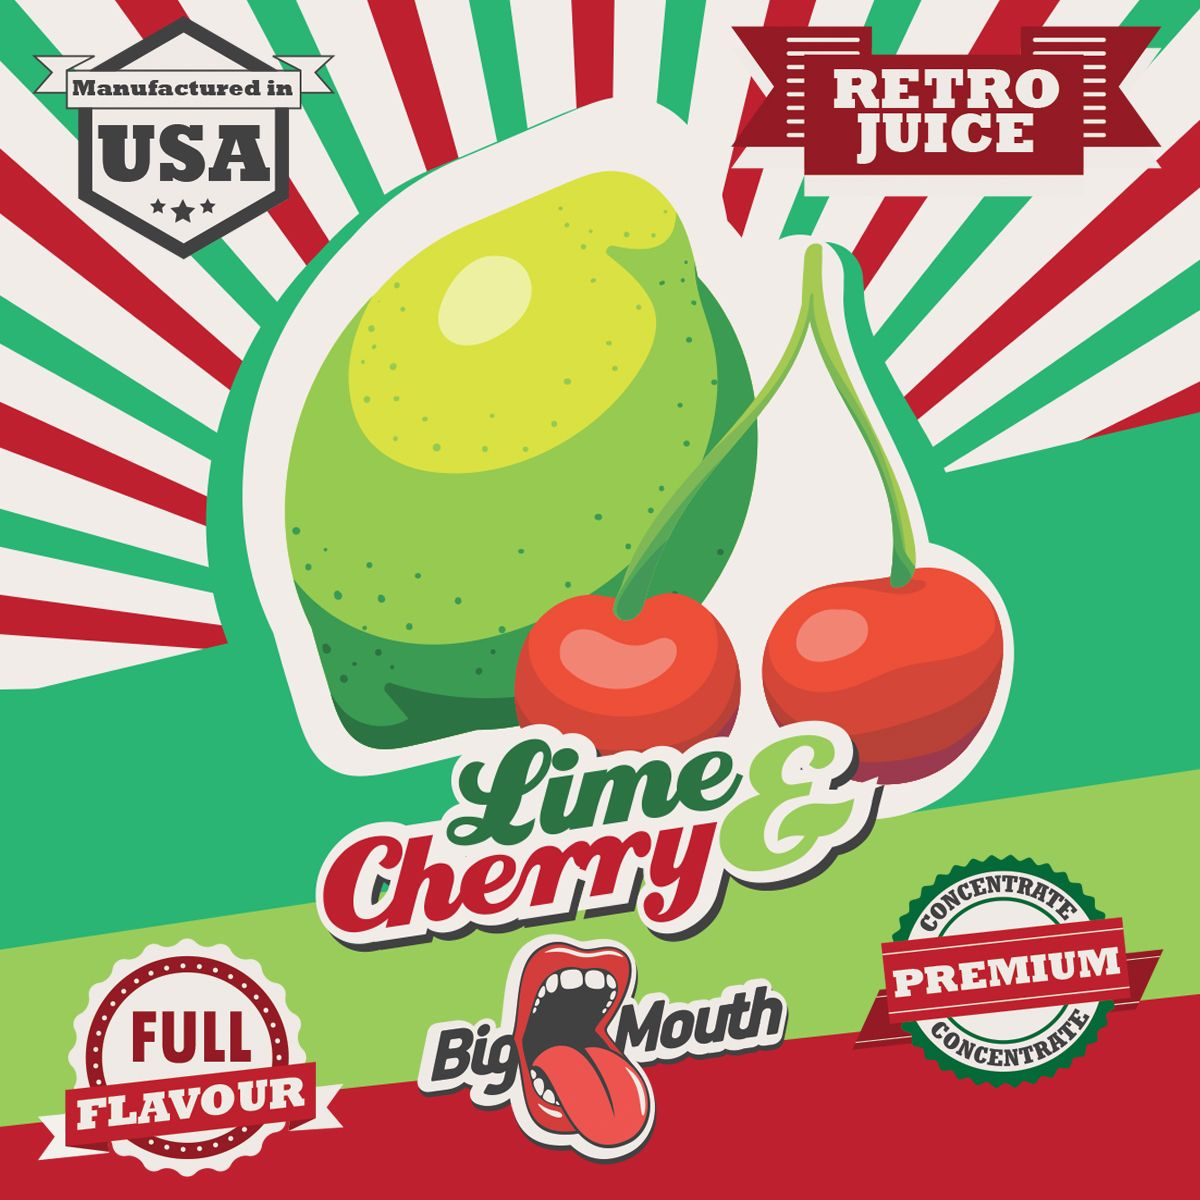 Příchuť Big Mouth RETRO - Limetka a Cherry - 10ml